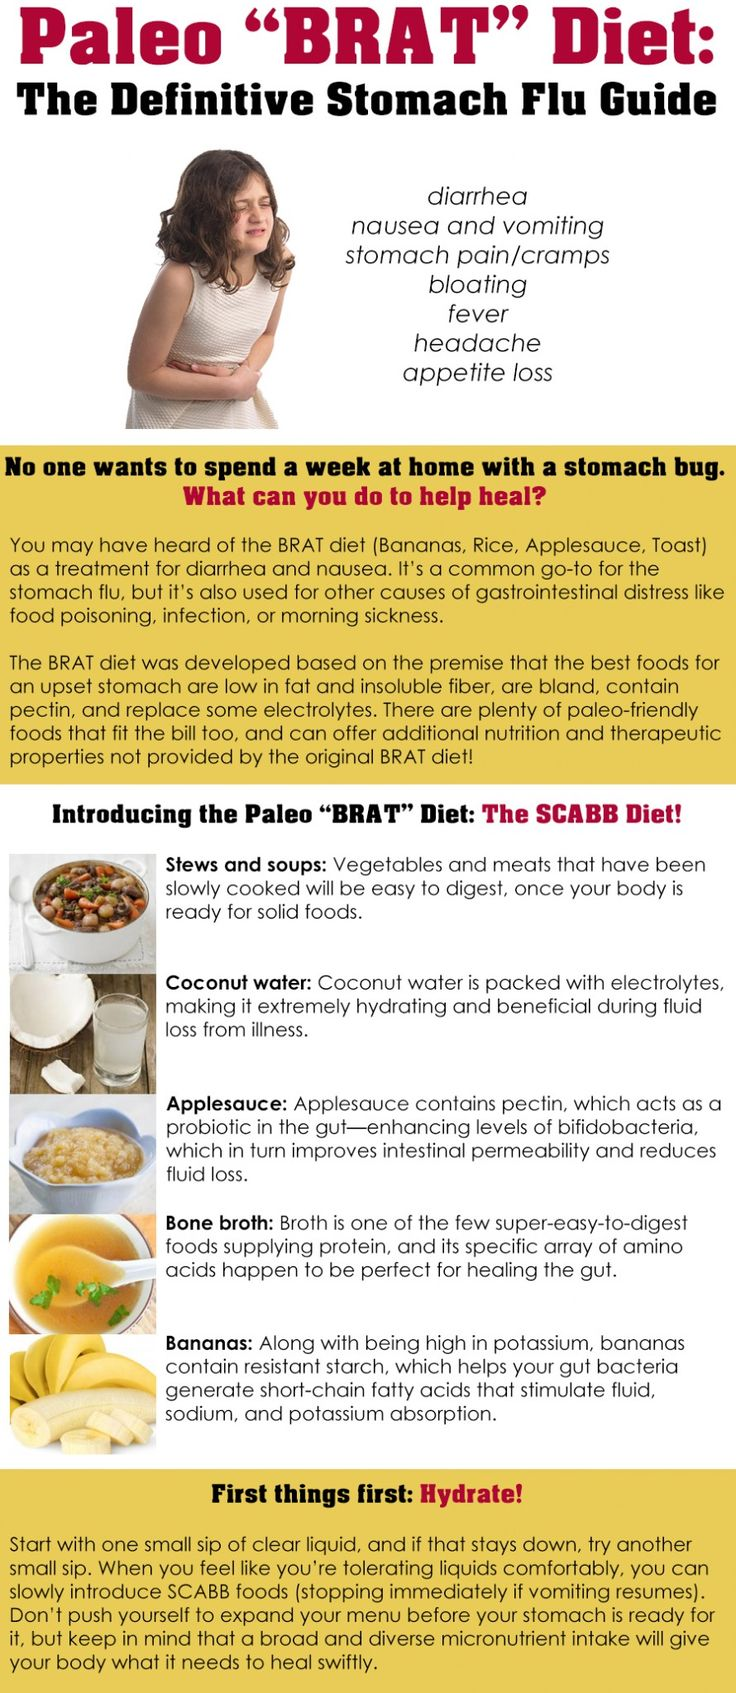 Paleo Brat Diet, not digging the acronym but happy for a healthy solution to stomach bugs.